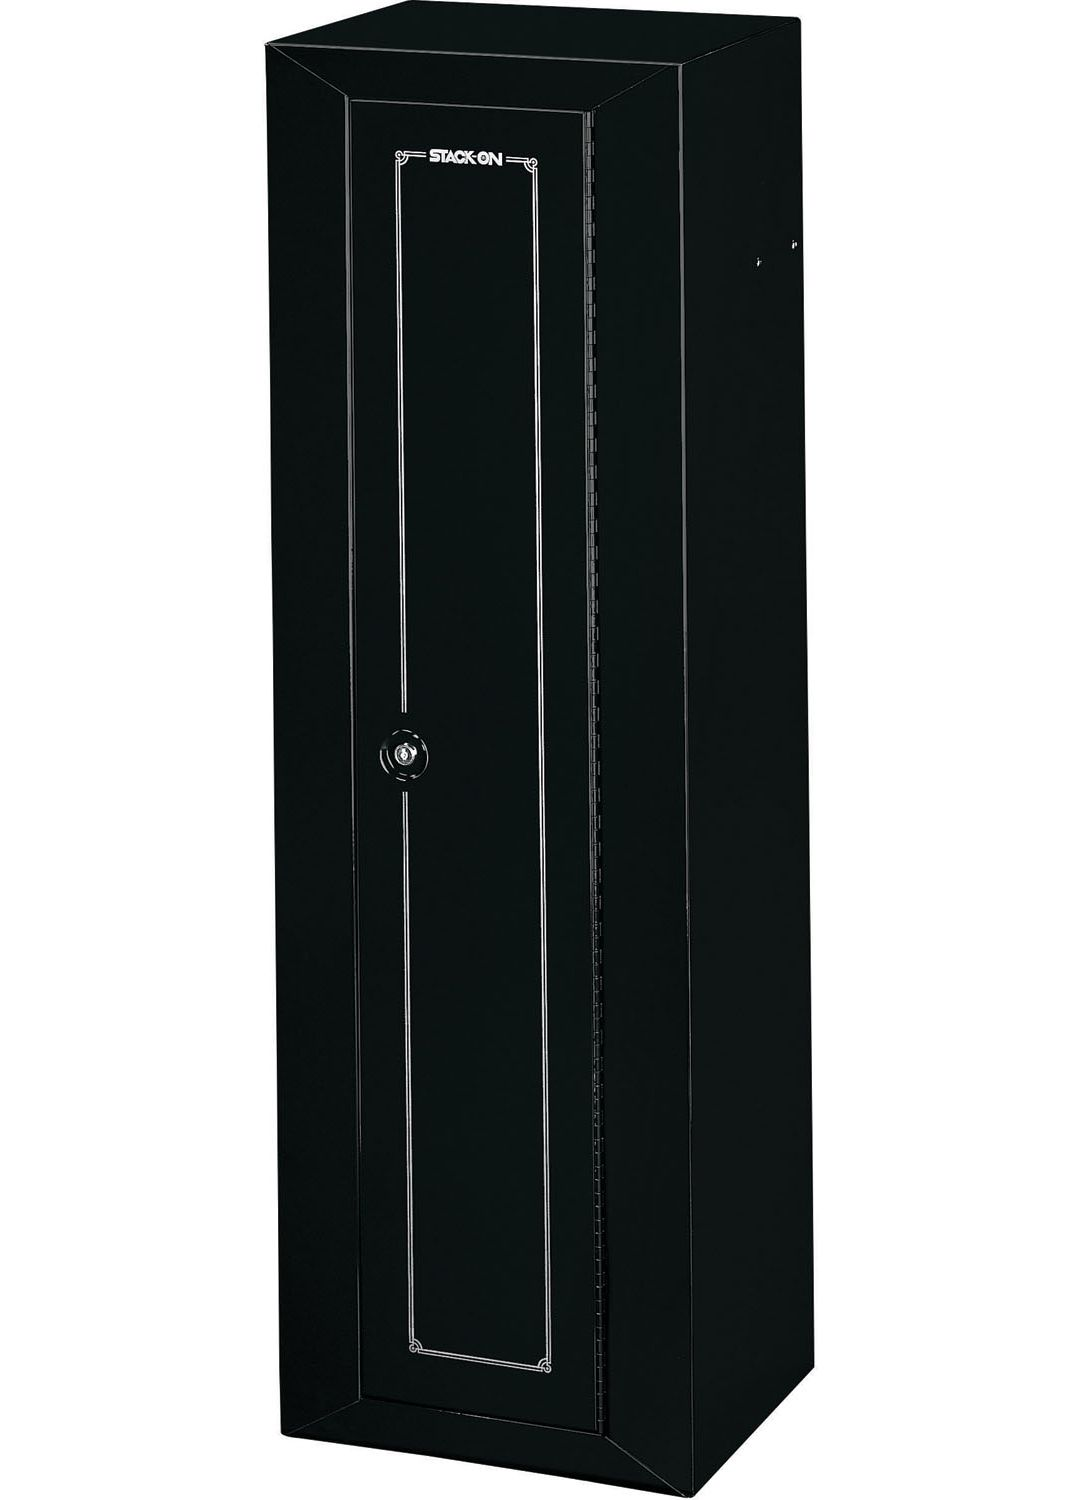 Gun Security Cabinet >> Stack On 10 Gun Compact Steel Security Cabinet Dick S Sporting Goods